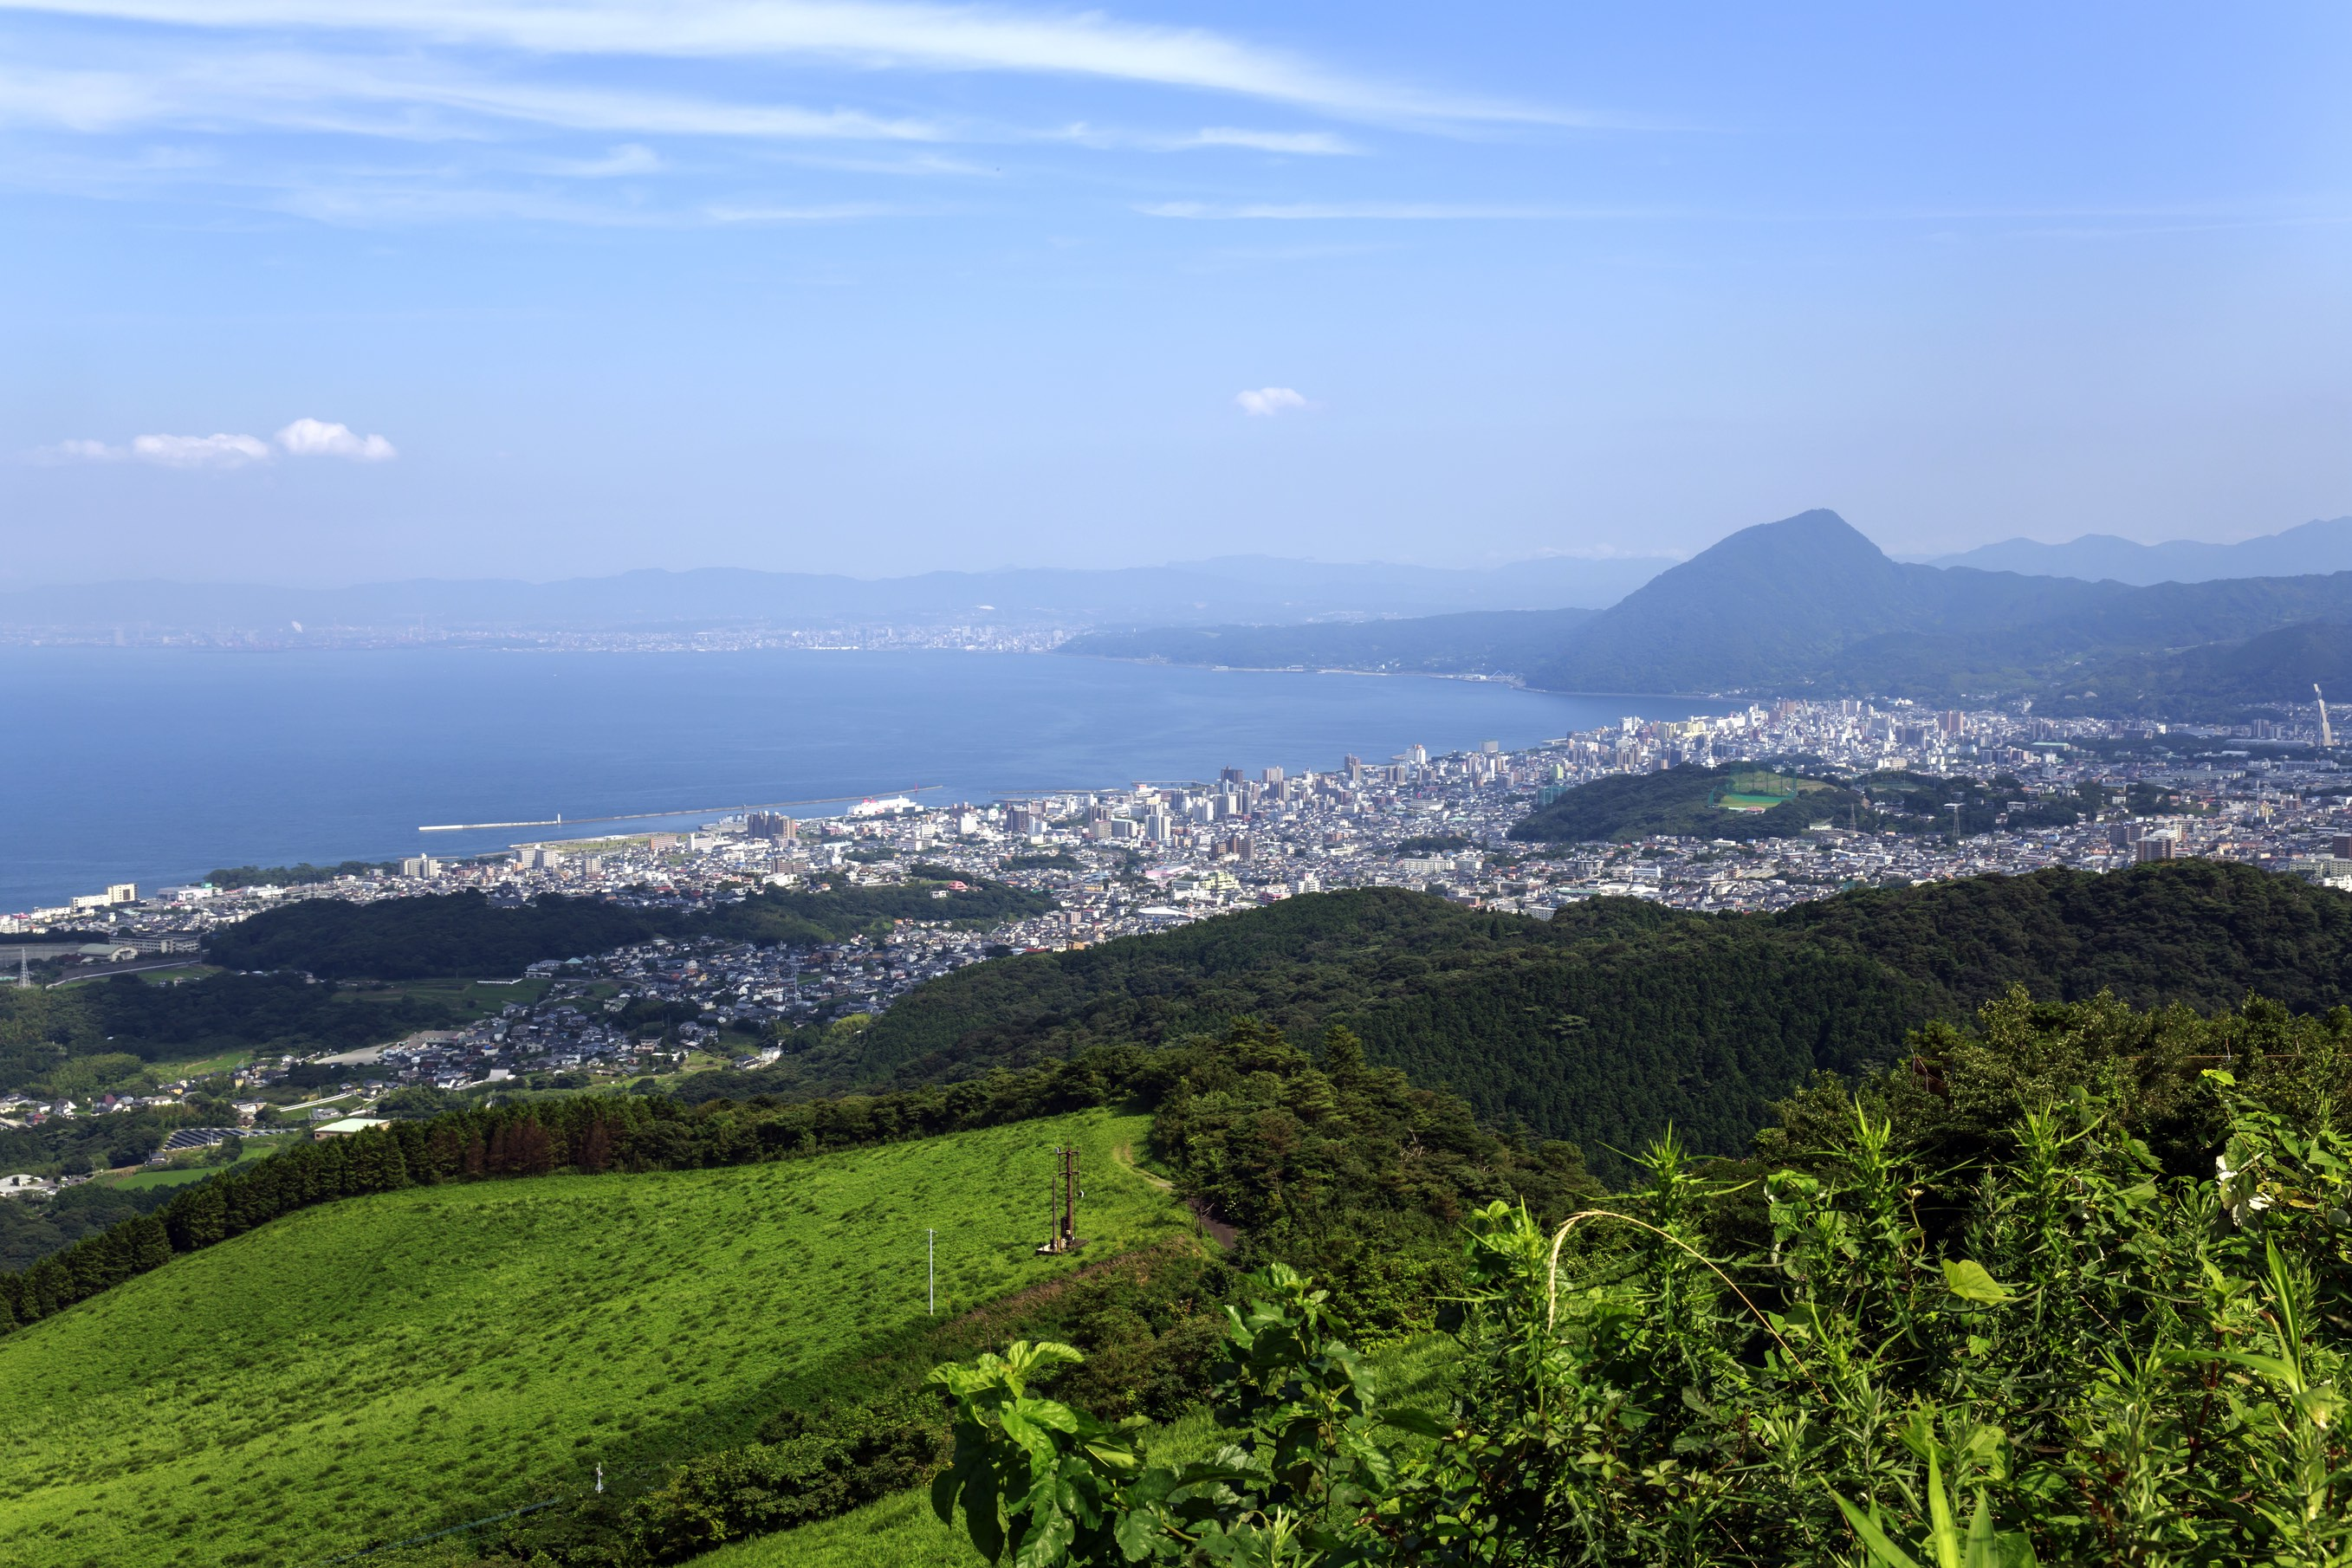 Beppu city in Oita, Japan